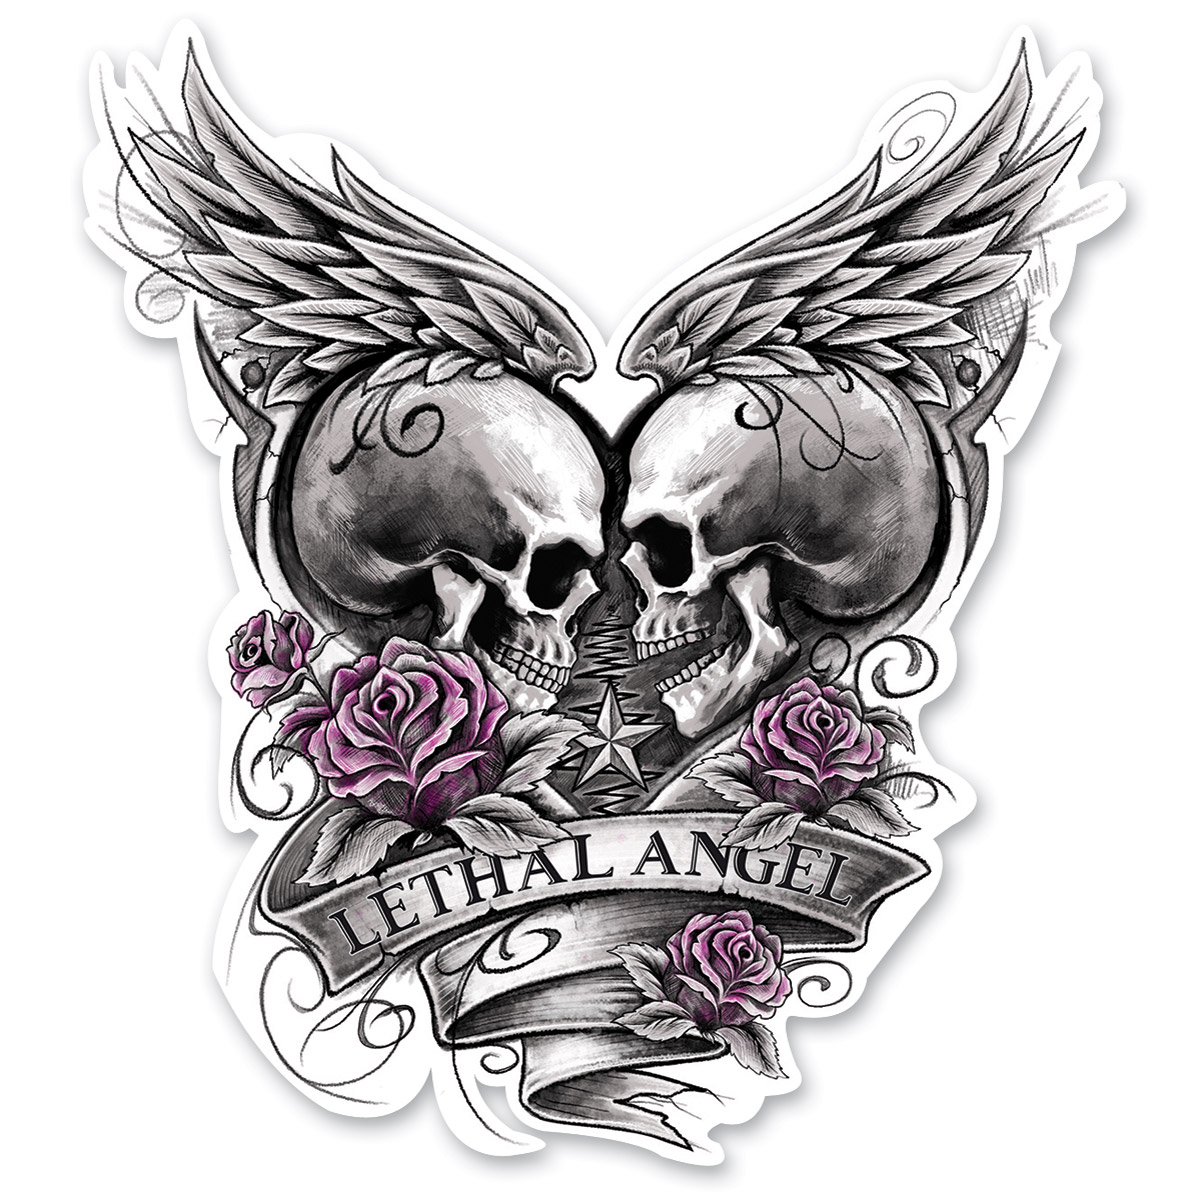 Lethal threat eternal love decal 161 589 j amp p cycles